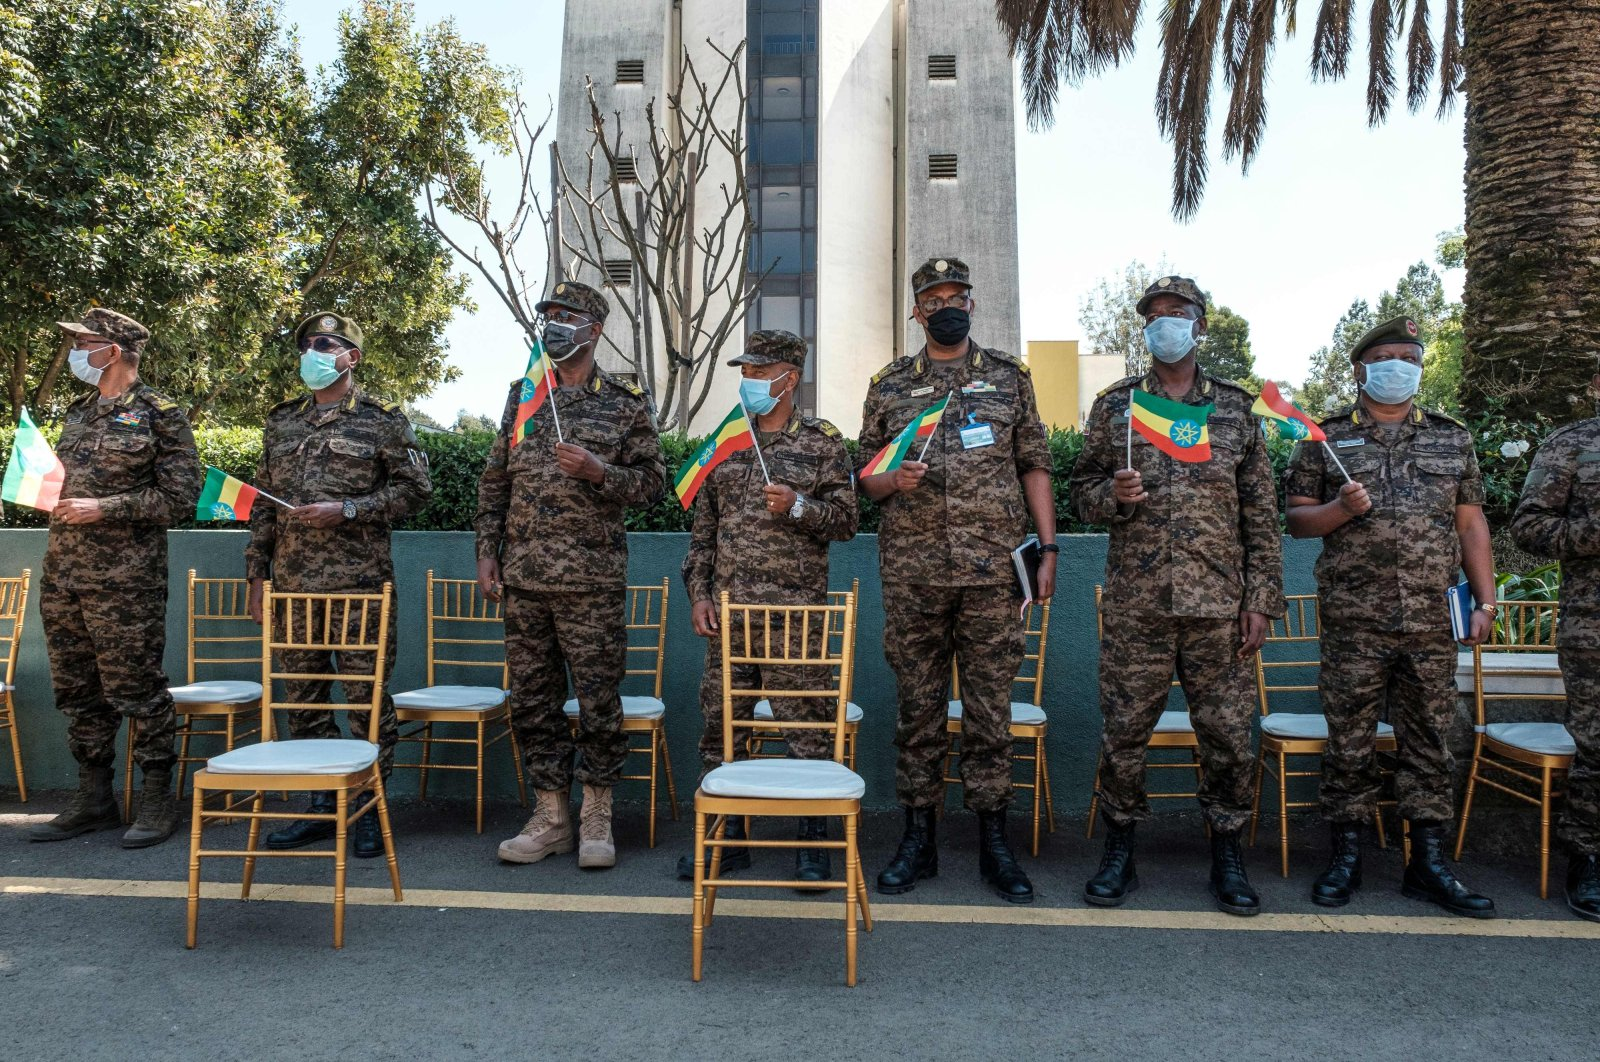 Members of the Ethiopian Army stand holding Ethiopian national flags during an event to honor the national defense forces, Addis Ababa, Nov. 17, 2020. (AFP Photo)